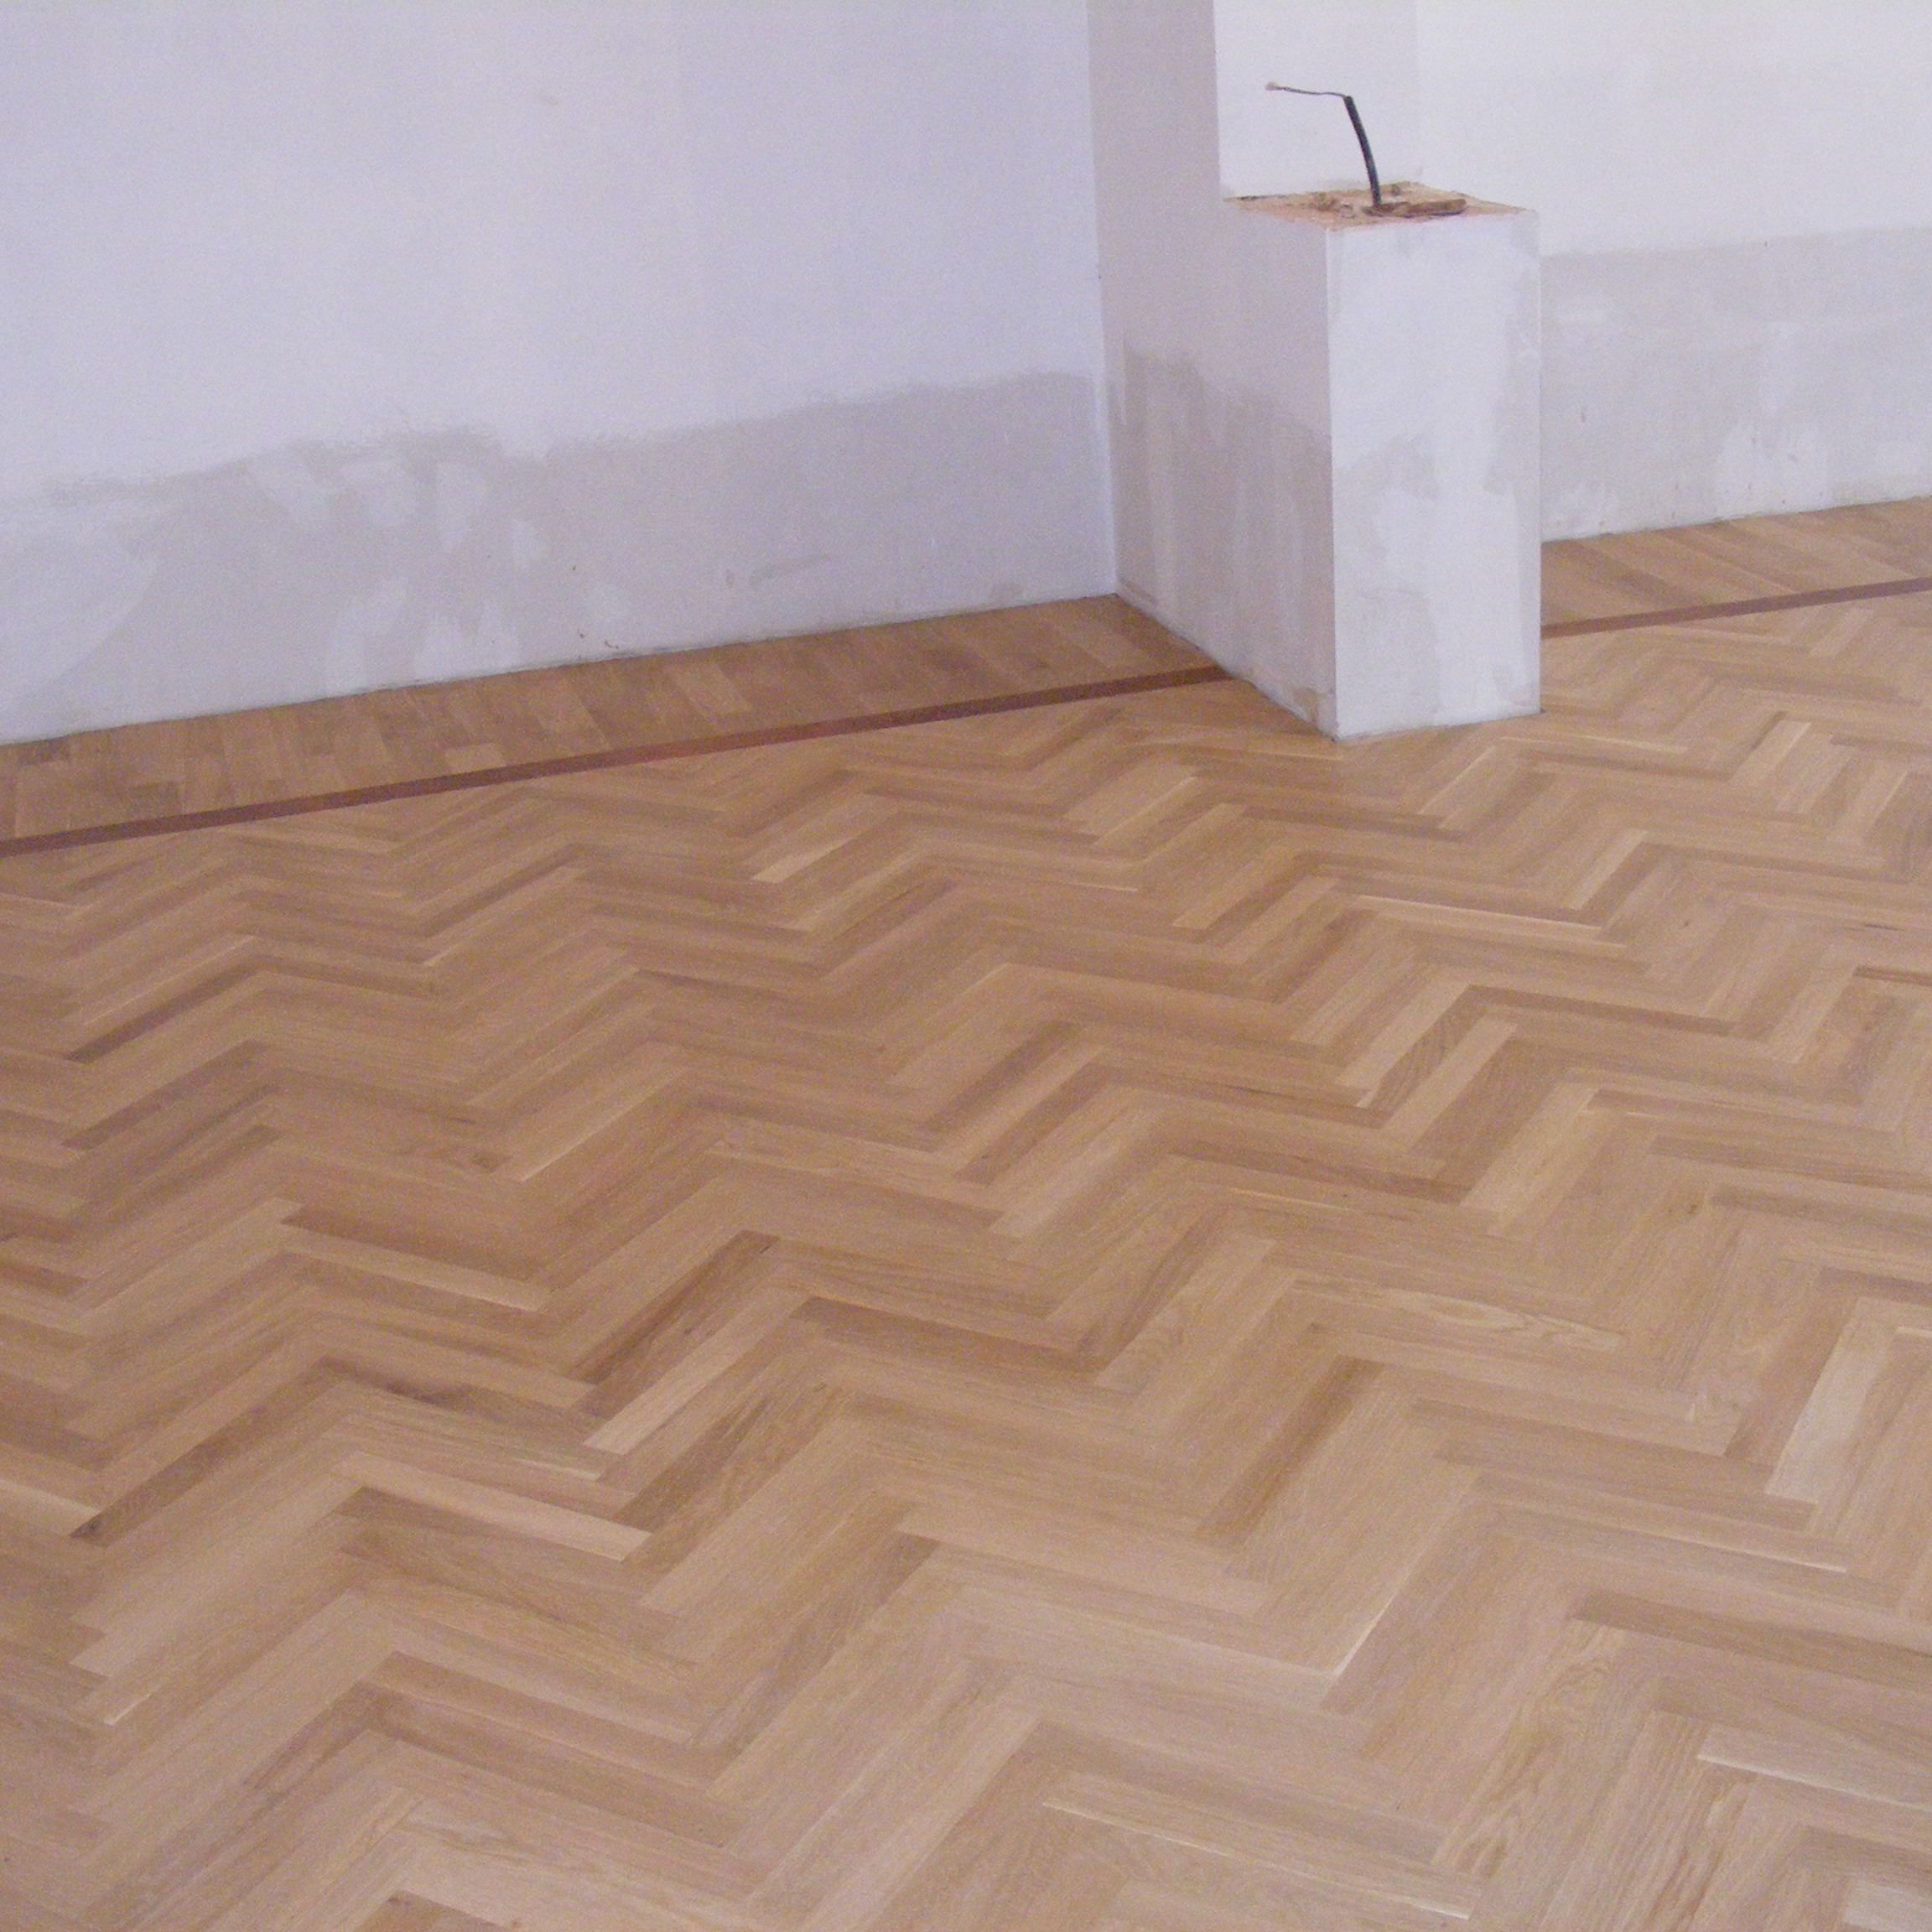 2.Herringbone oak flooring lacquered